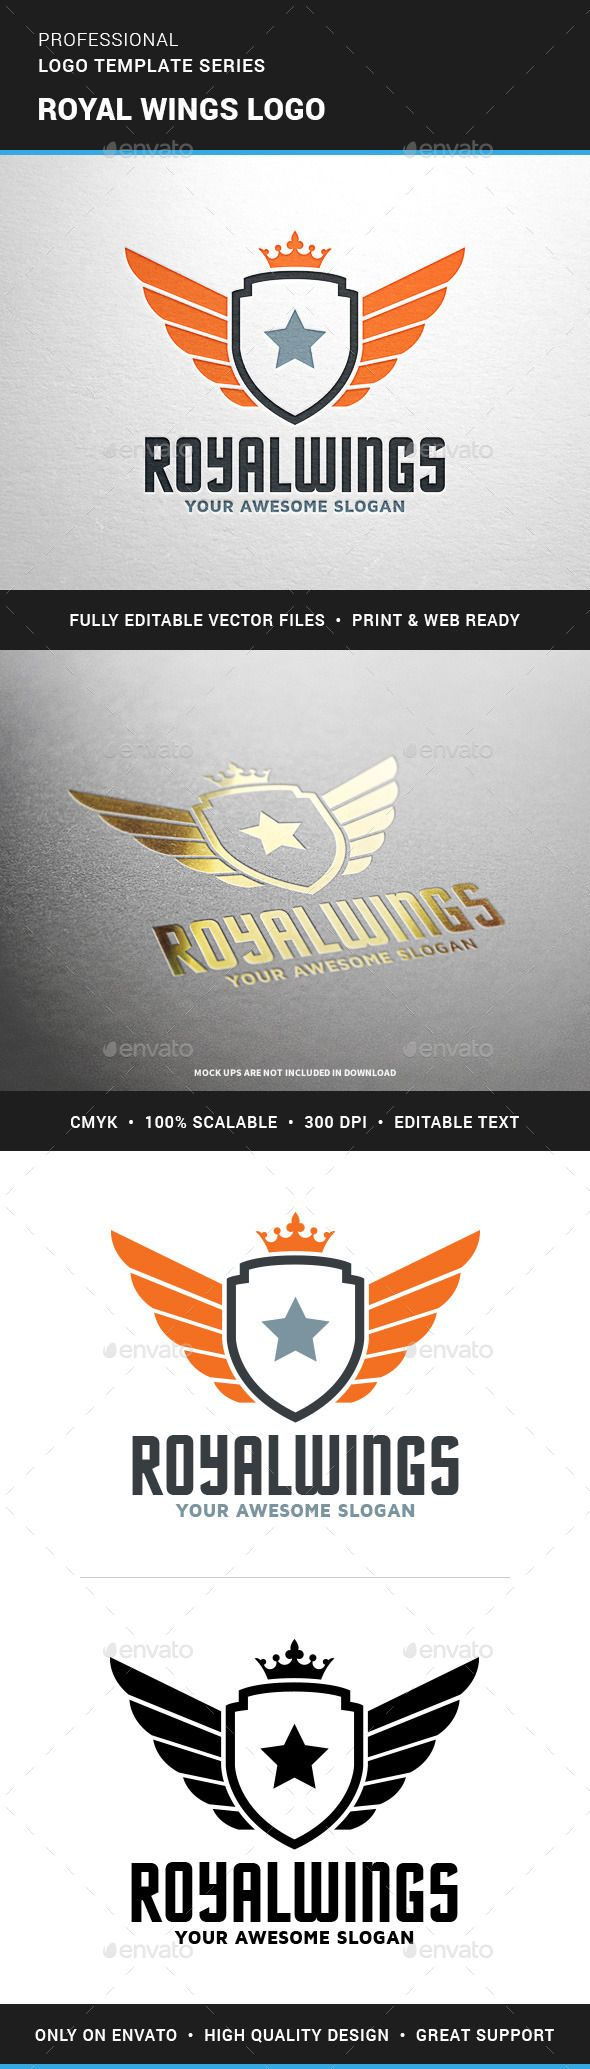 Royal Wings Logo Template — Transparent PNG #flight #company • Available here → https://graphicriver.net/item/royal-wings-logo-template/12364849?ref=pxcr